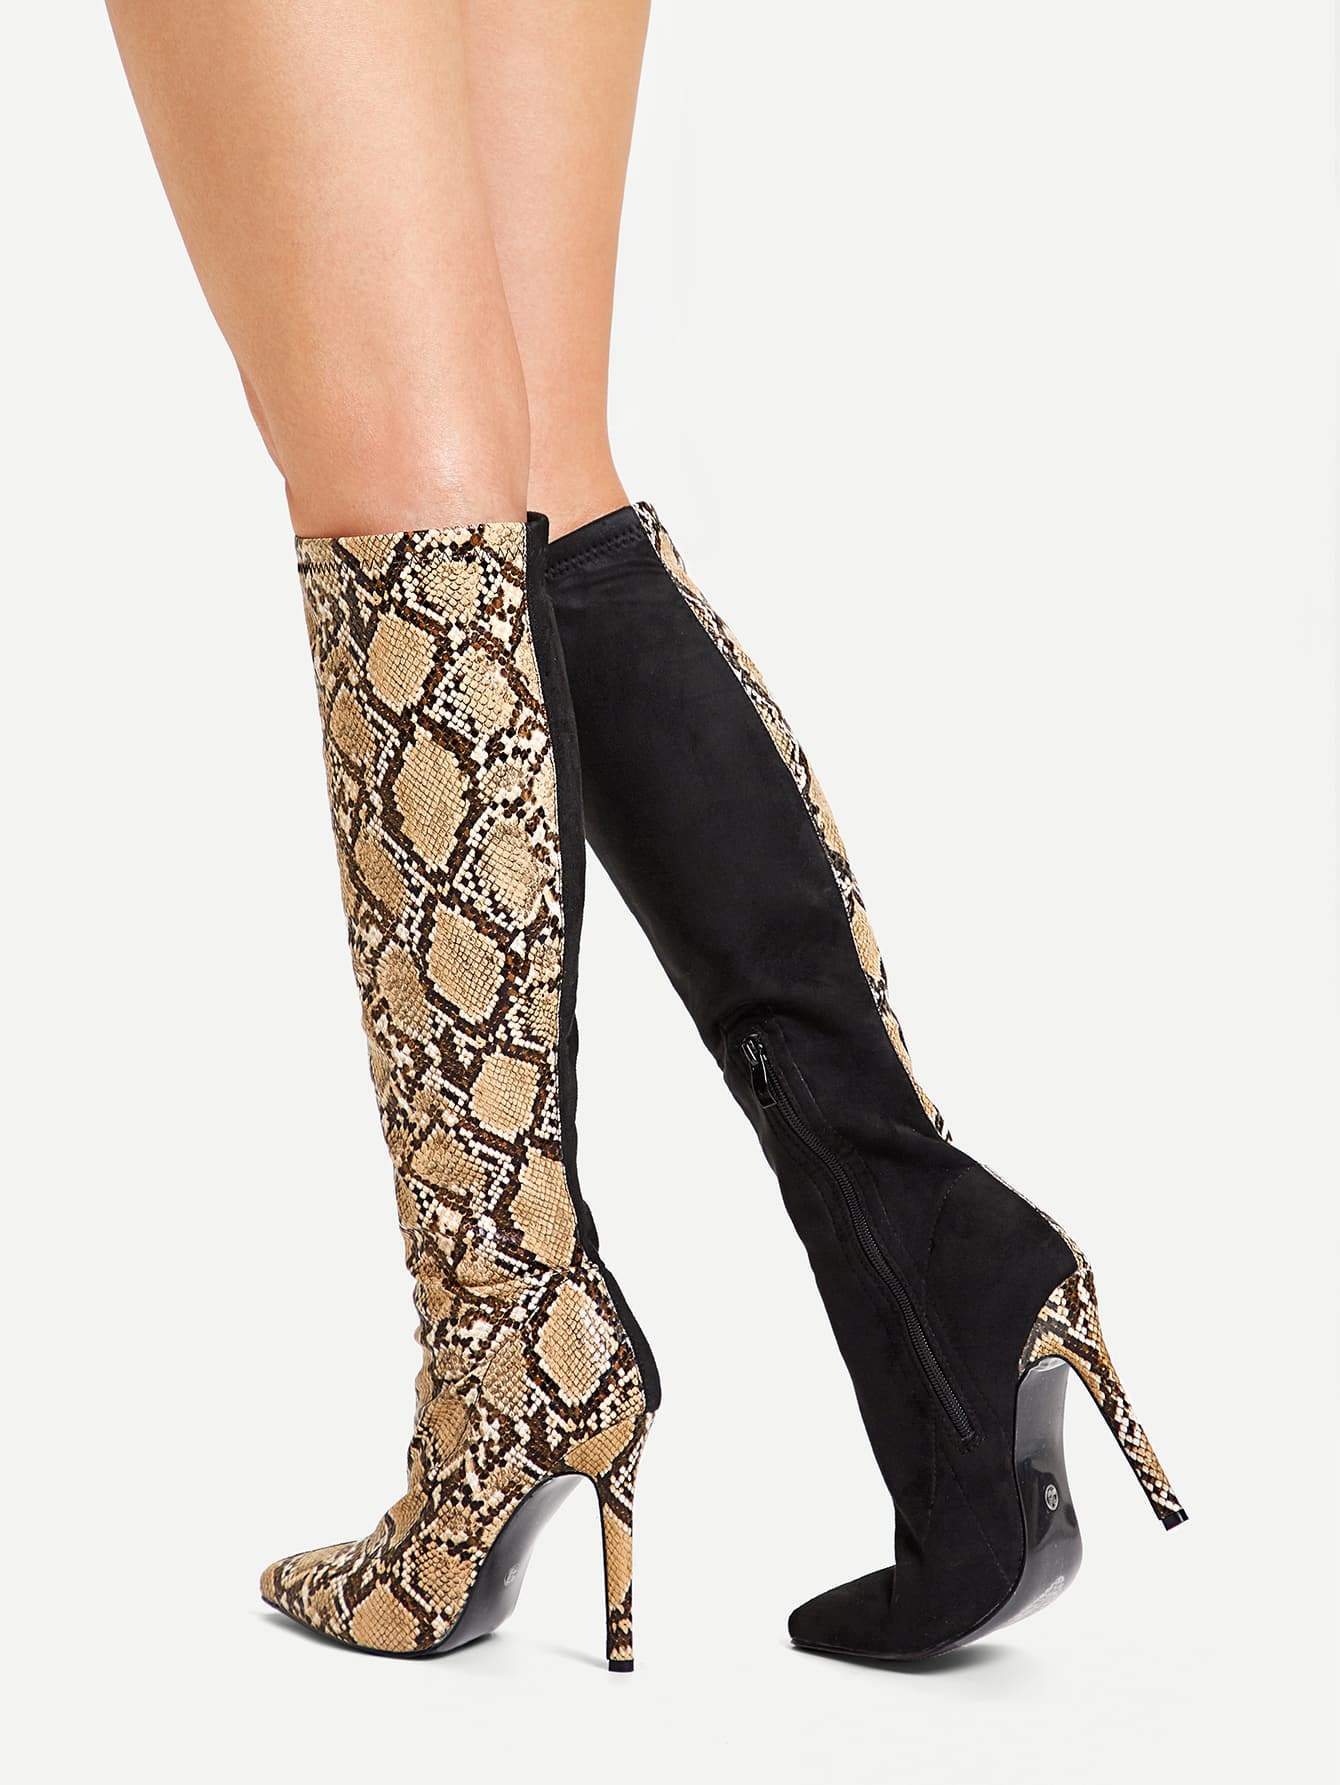 Contrast Snakeskin Pattern Knee High Boots